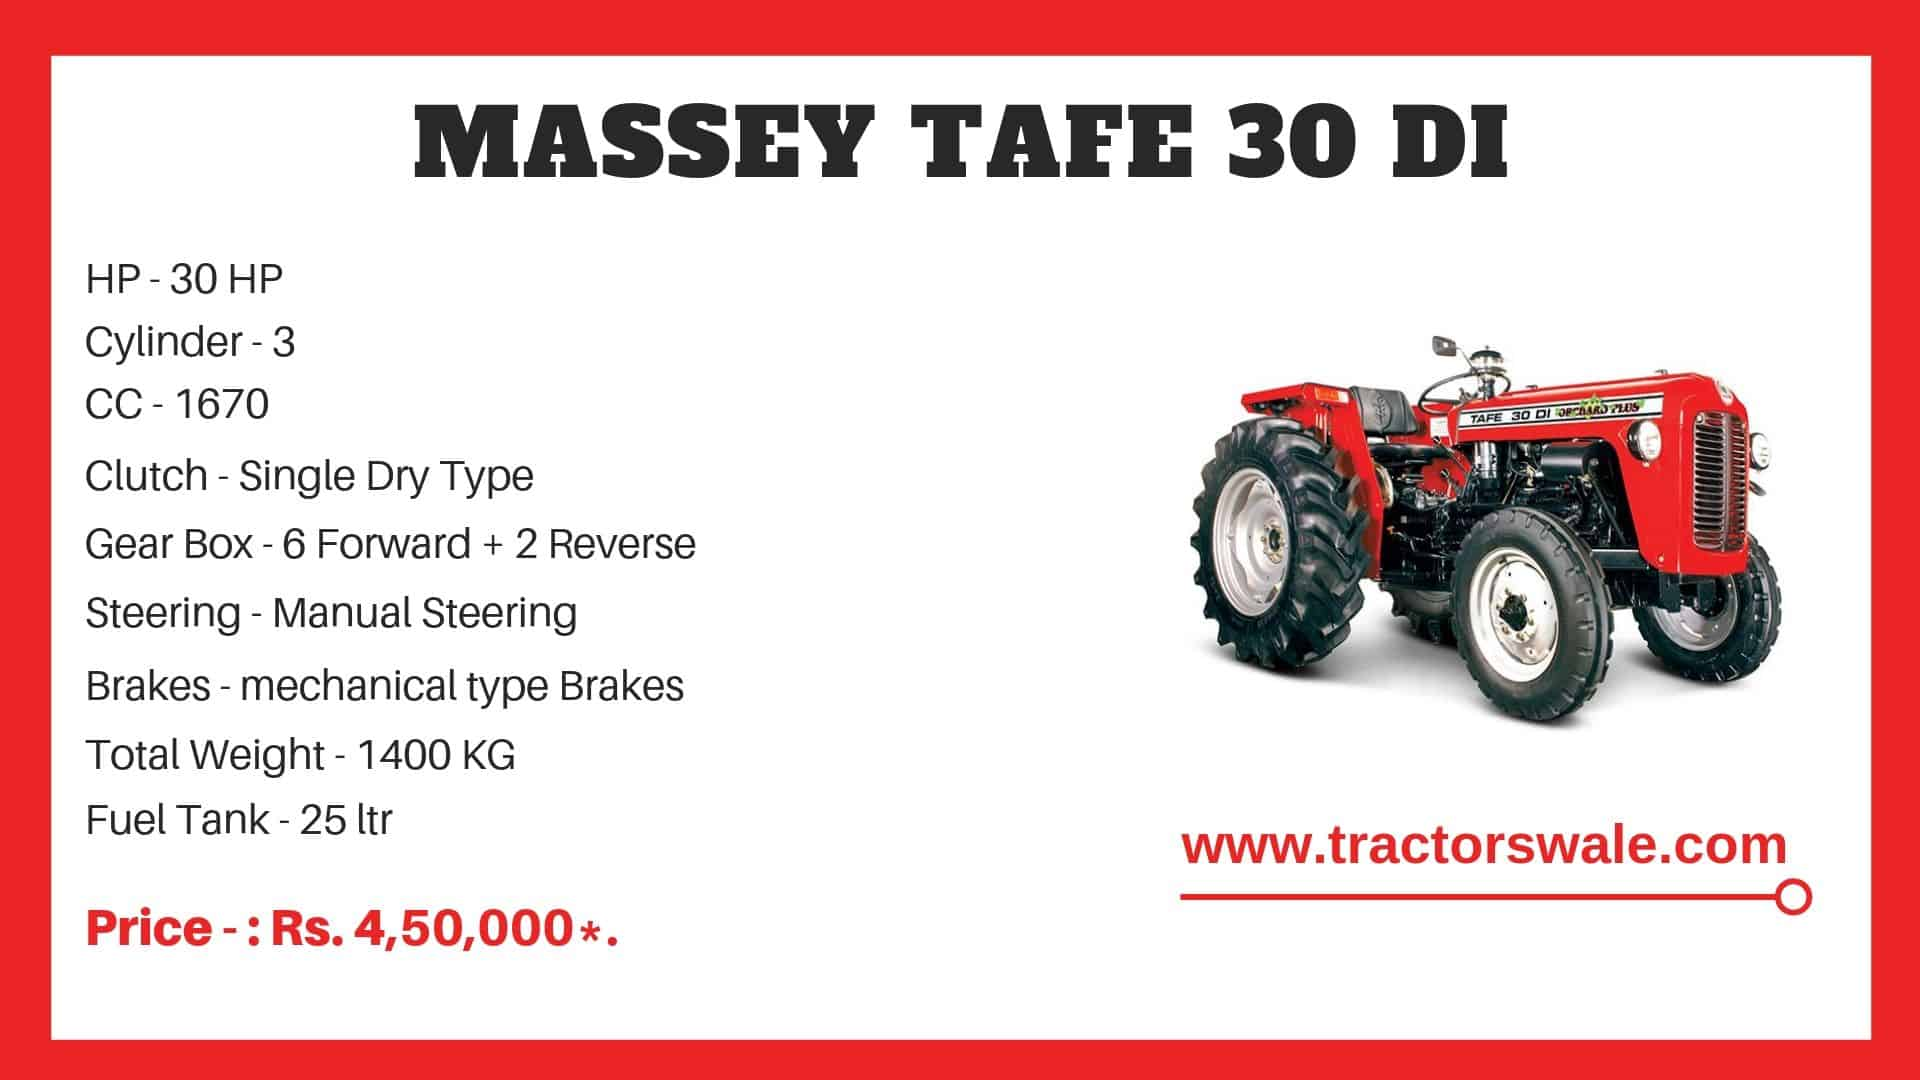 Specifications Of TAFE 30 DI Tractor